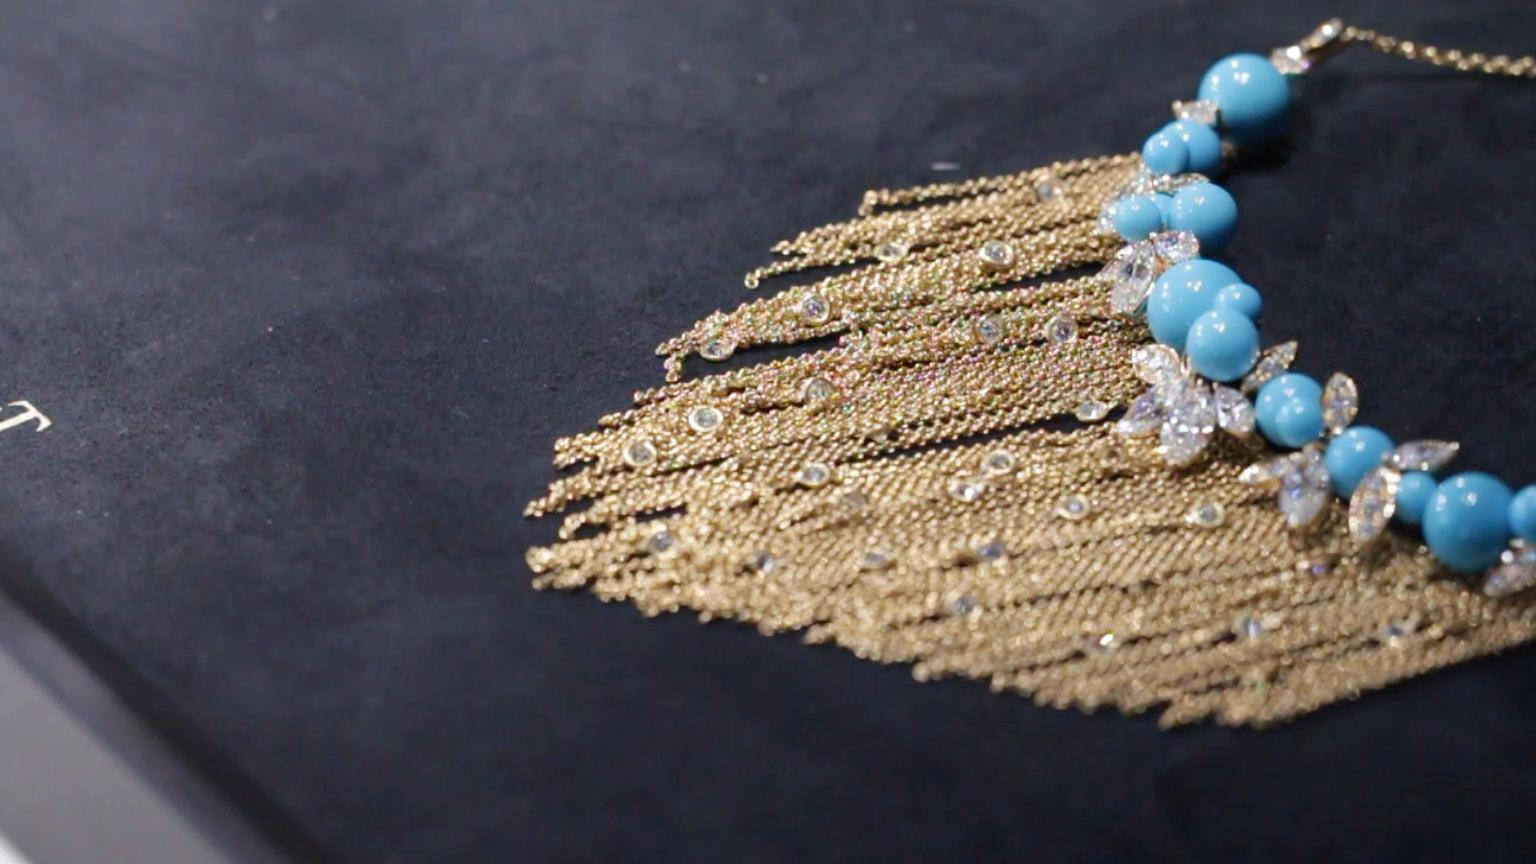 Extremely Piaget necklace with interspersed brilliant-cut diamonds amongst gold tassels hanging from turquoise beads and pear-shaped diamonds.